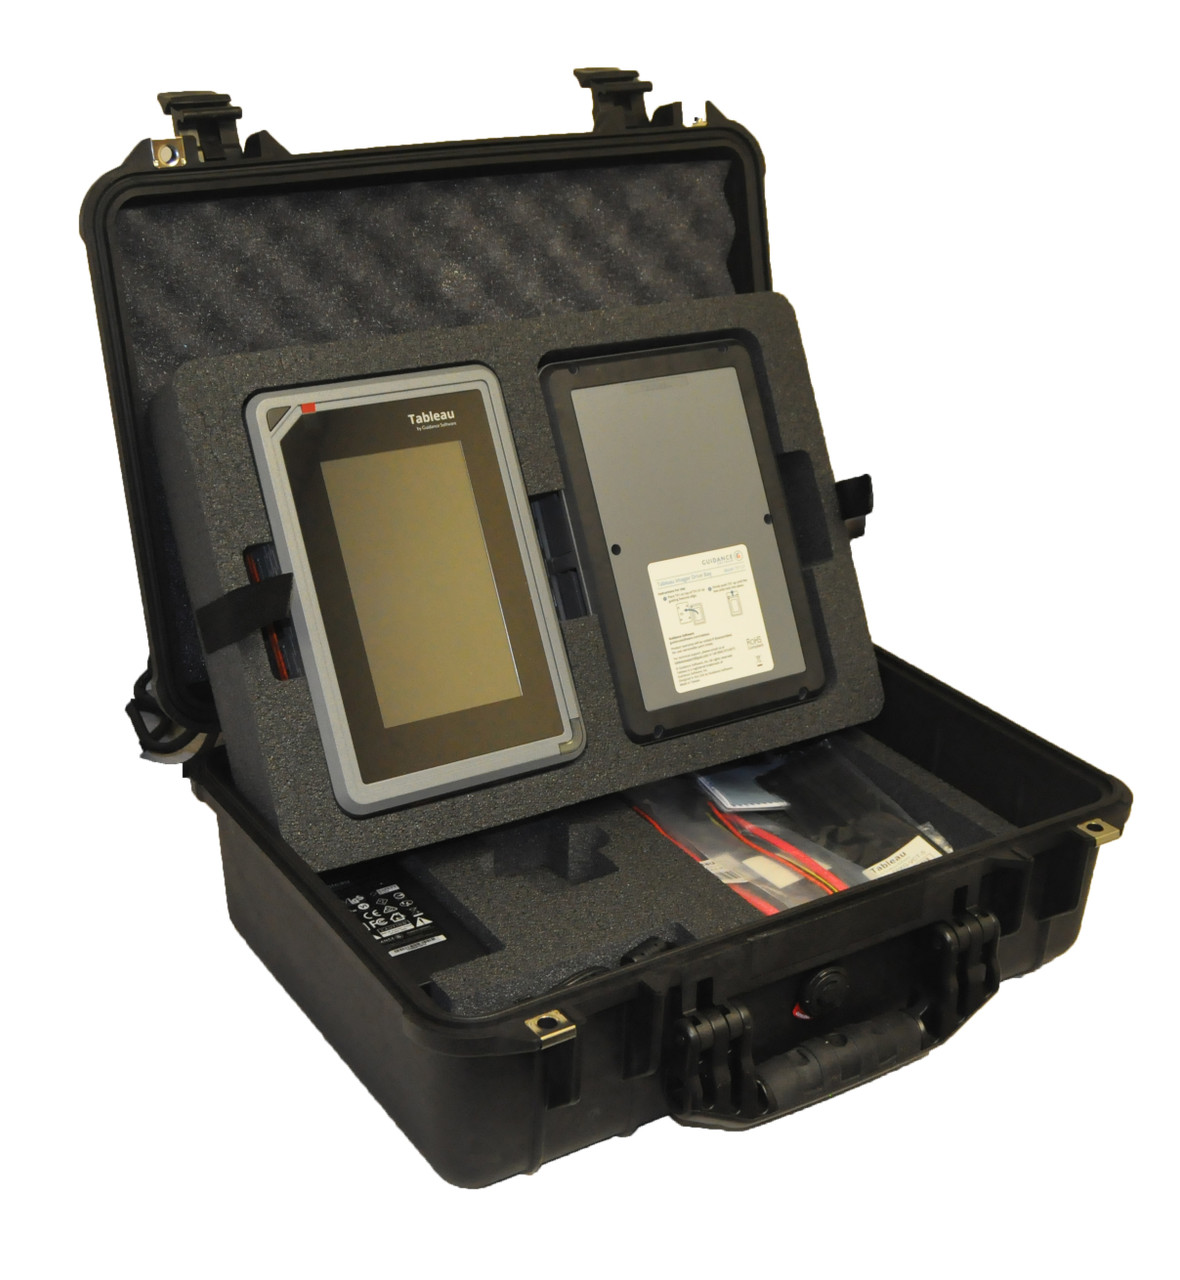 Tableau Tx1 Forensic Imaging Kit With Case Df Fi Tx1 Kit